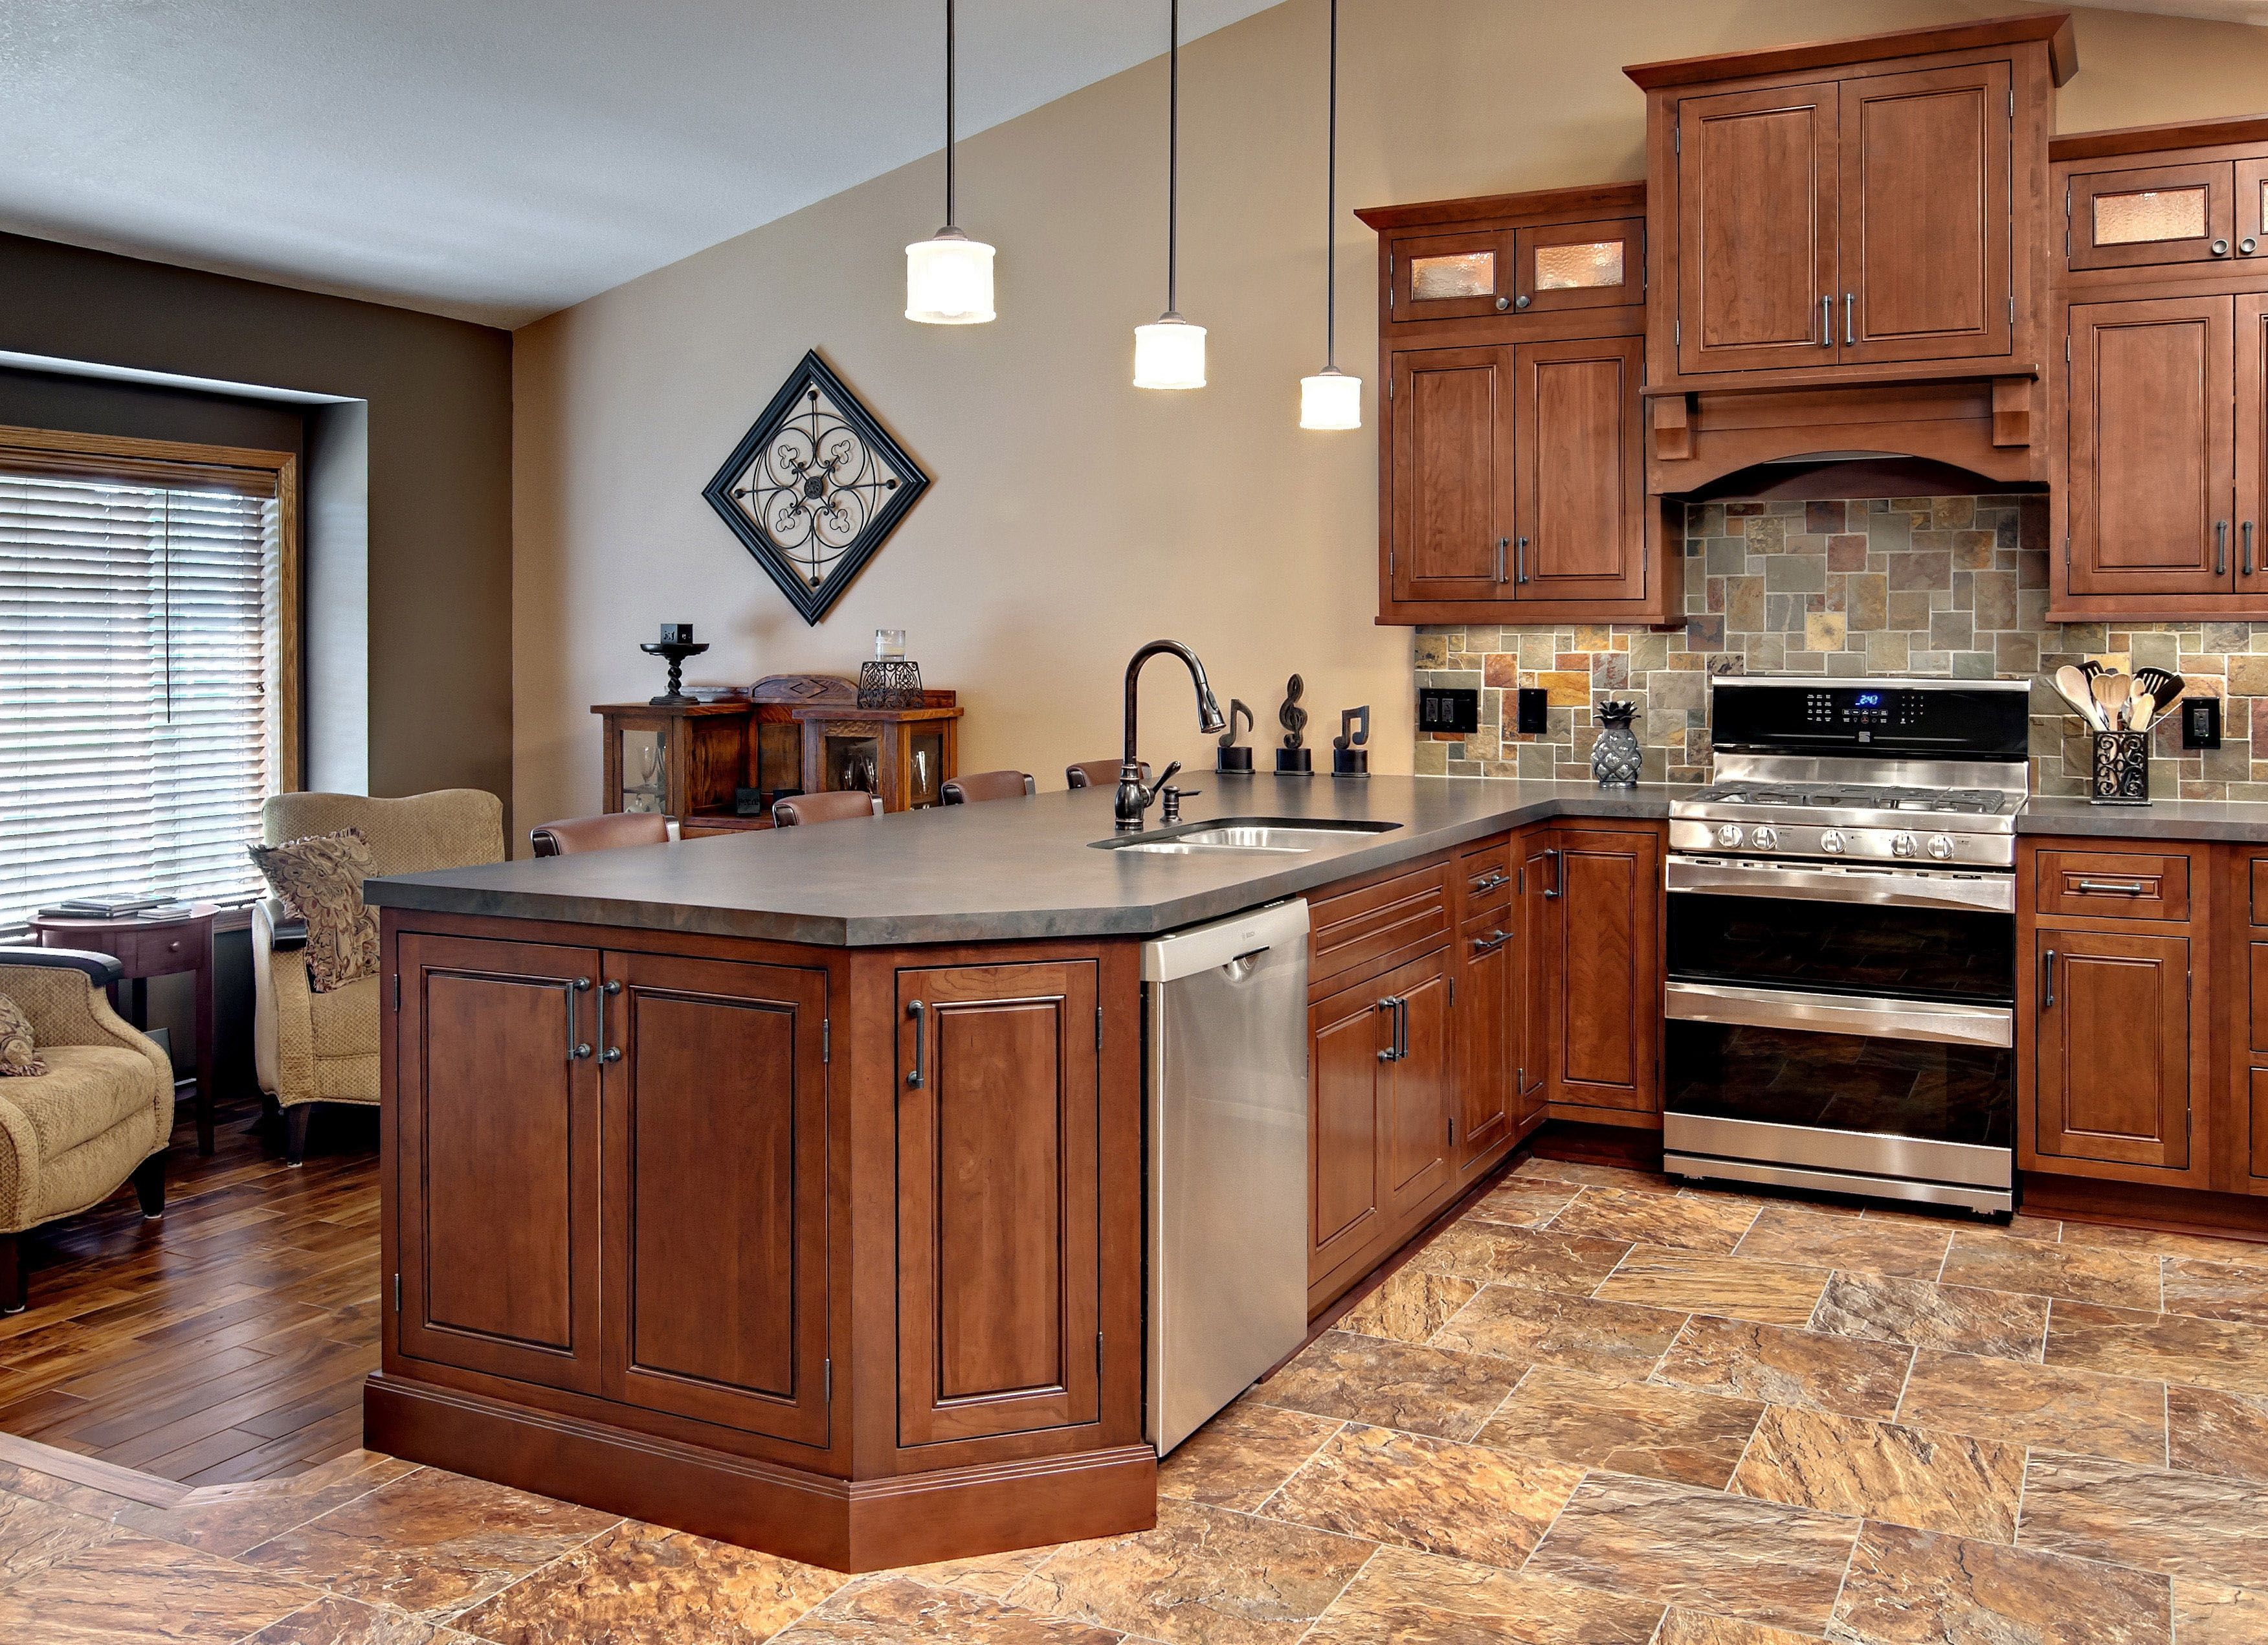 Tall Angled Kitchen Cabinets in 2019 | Cherry wood kitchen ...